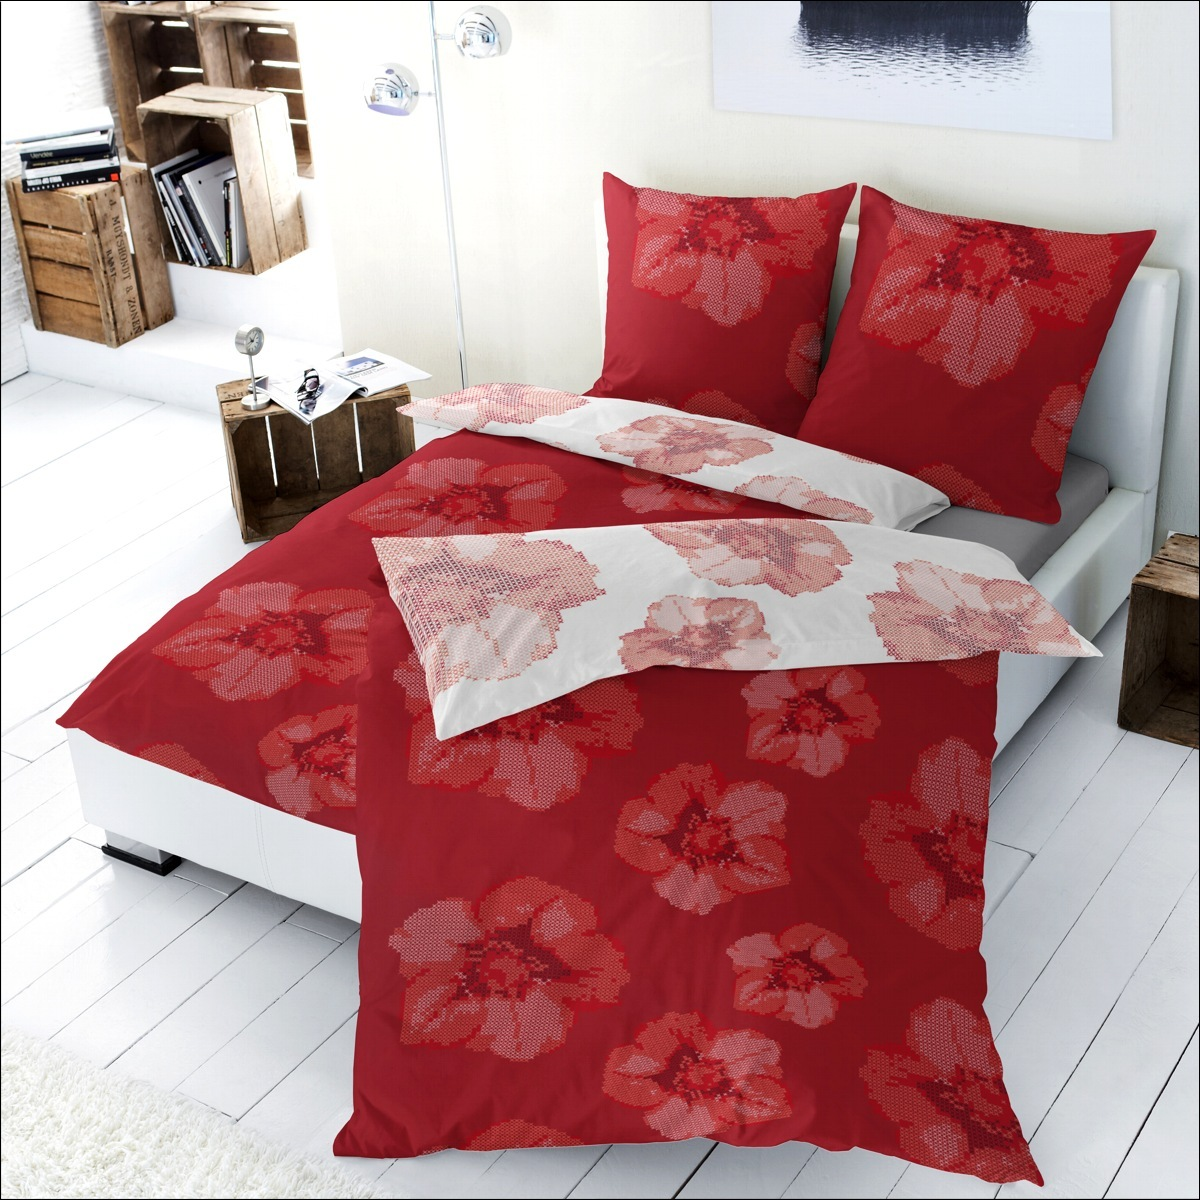 hahn renforce bettw sche 200x200 cm 125007 022 wendebettw sche wei rot blumen ebay. Black Bedroom Furniture Sets. Home Design Ideas